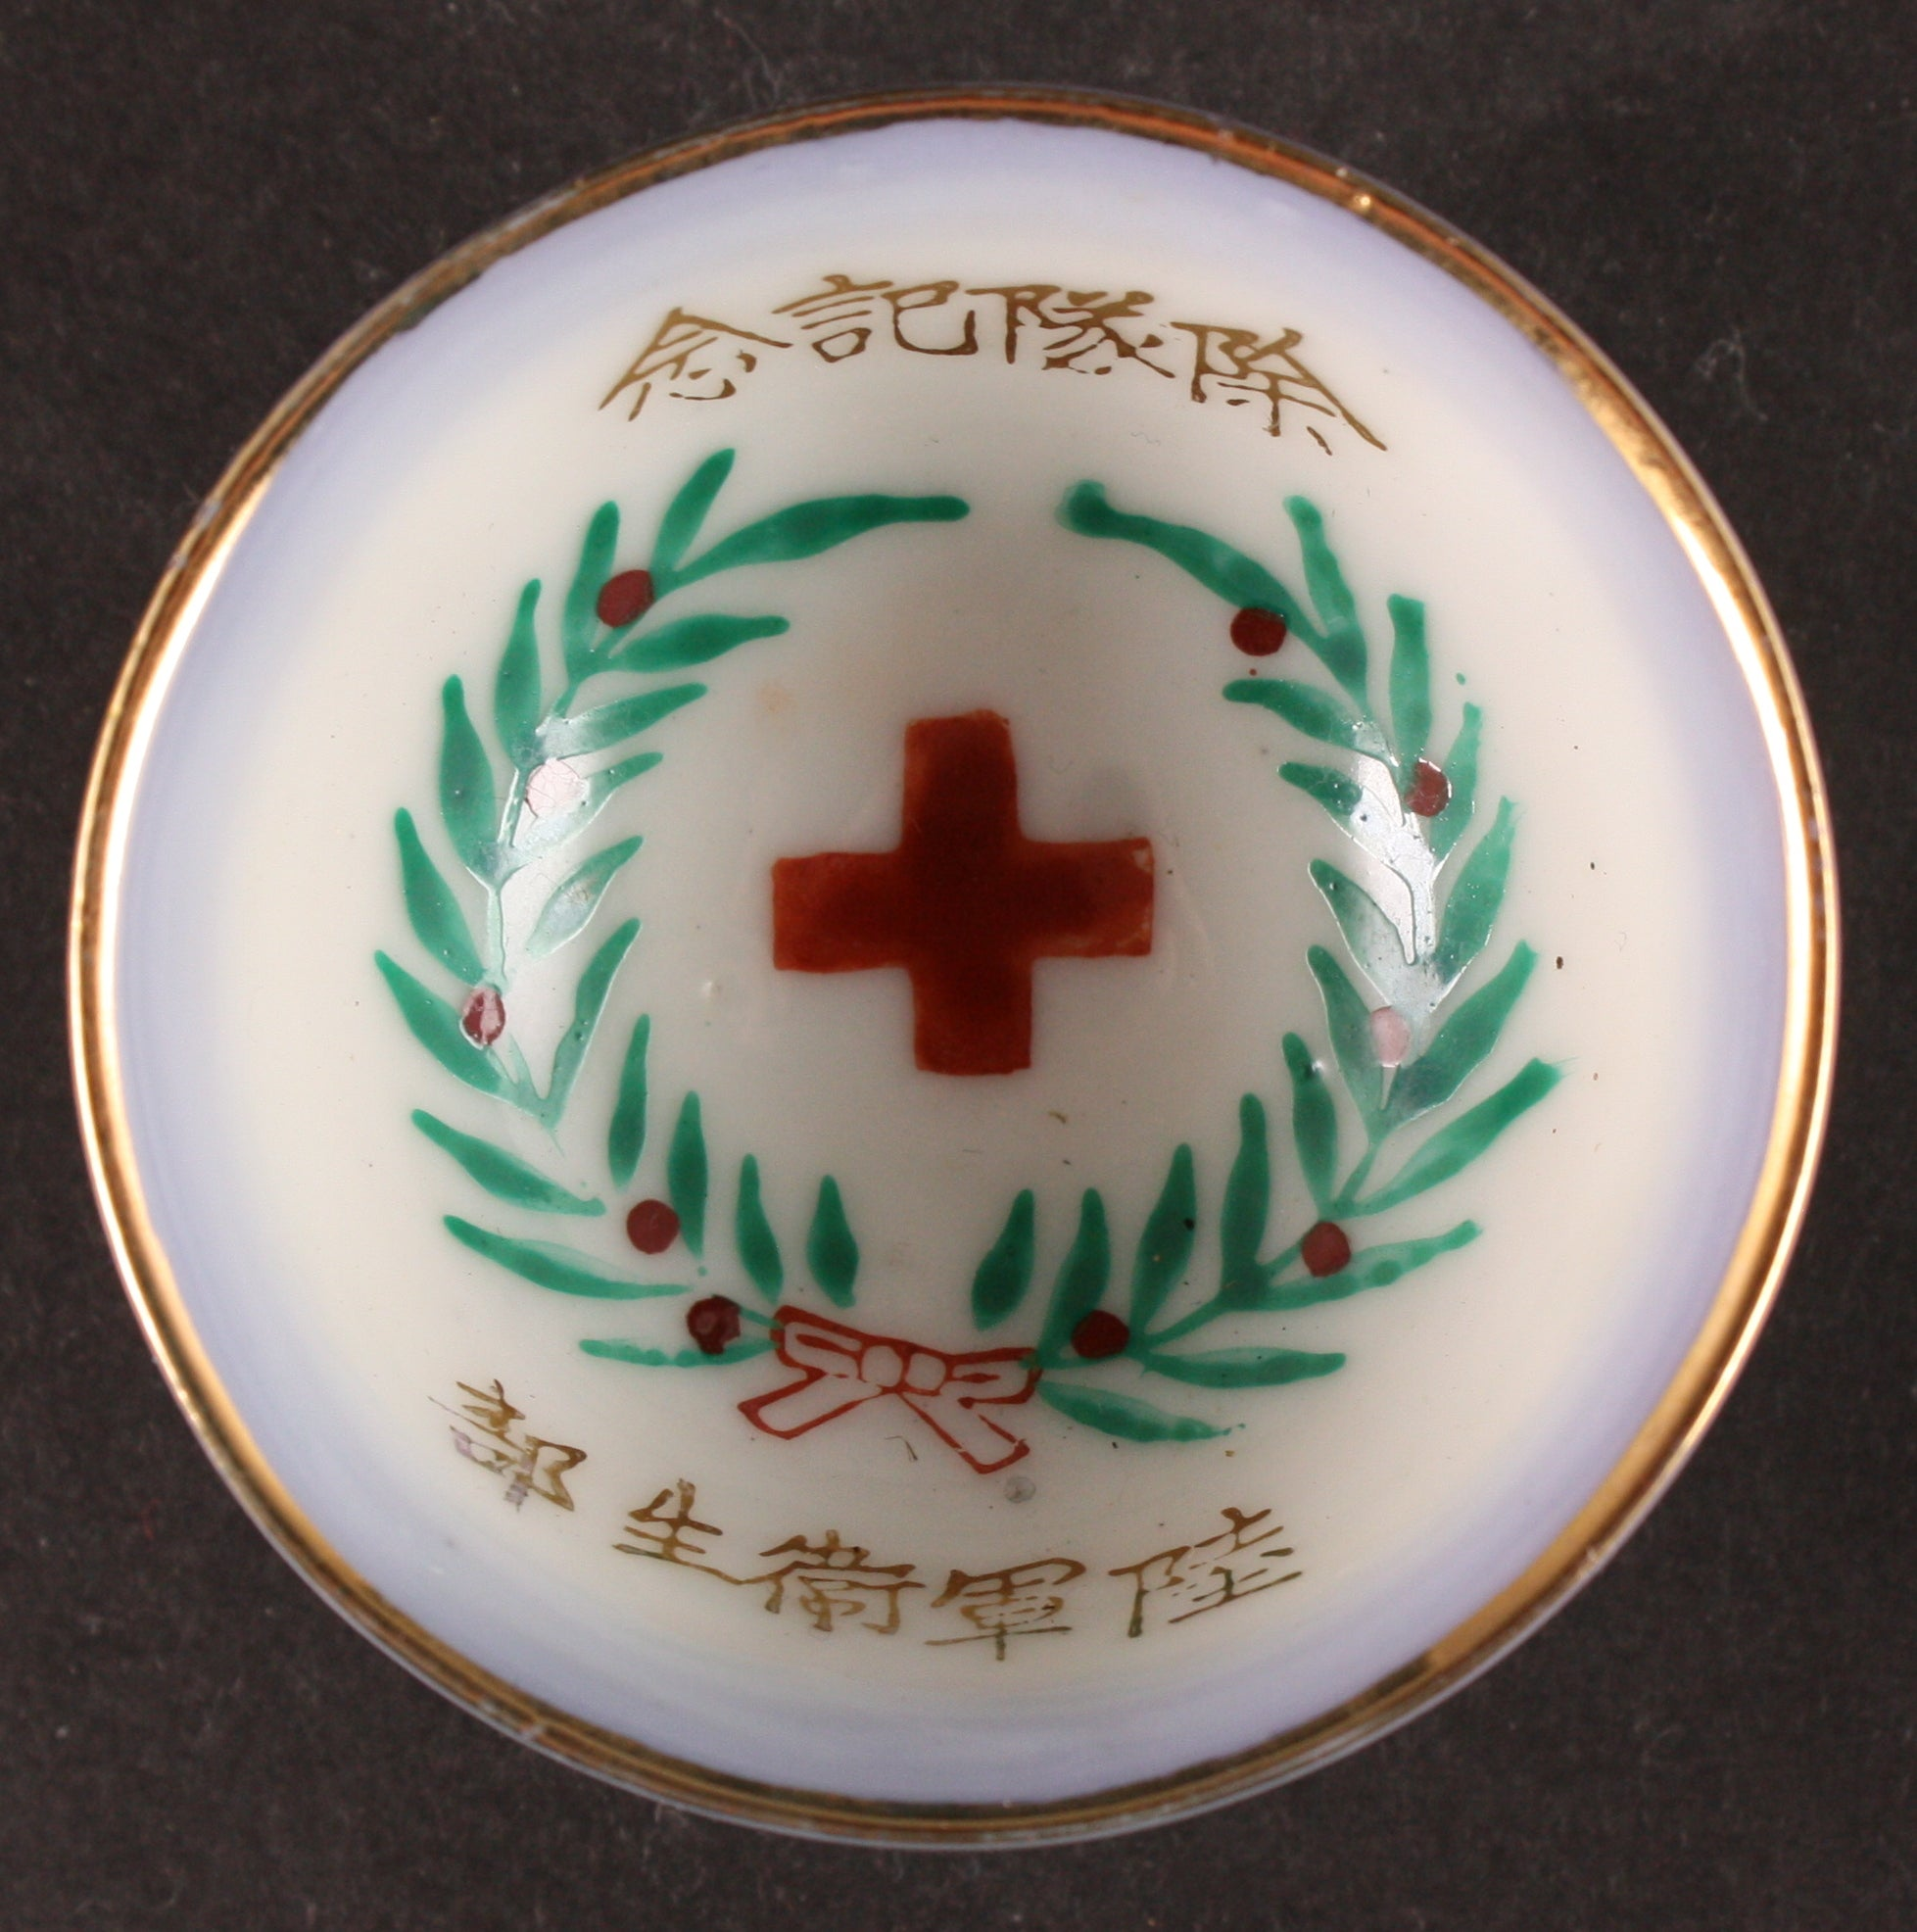 Antique Japanese Military Red Cross Army Medic Sake Cup